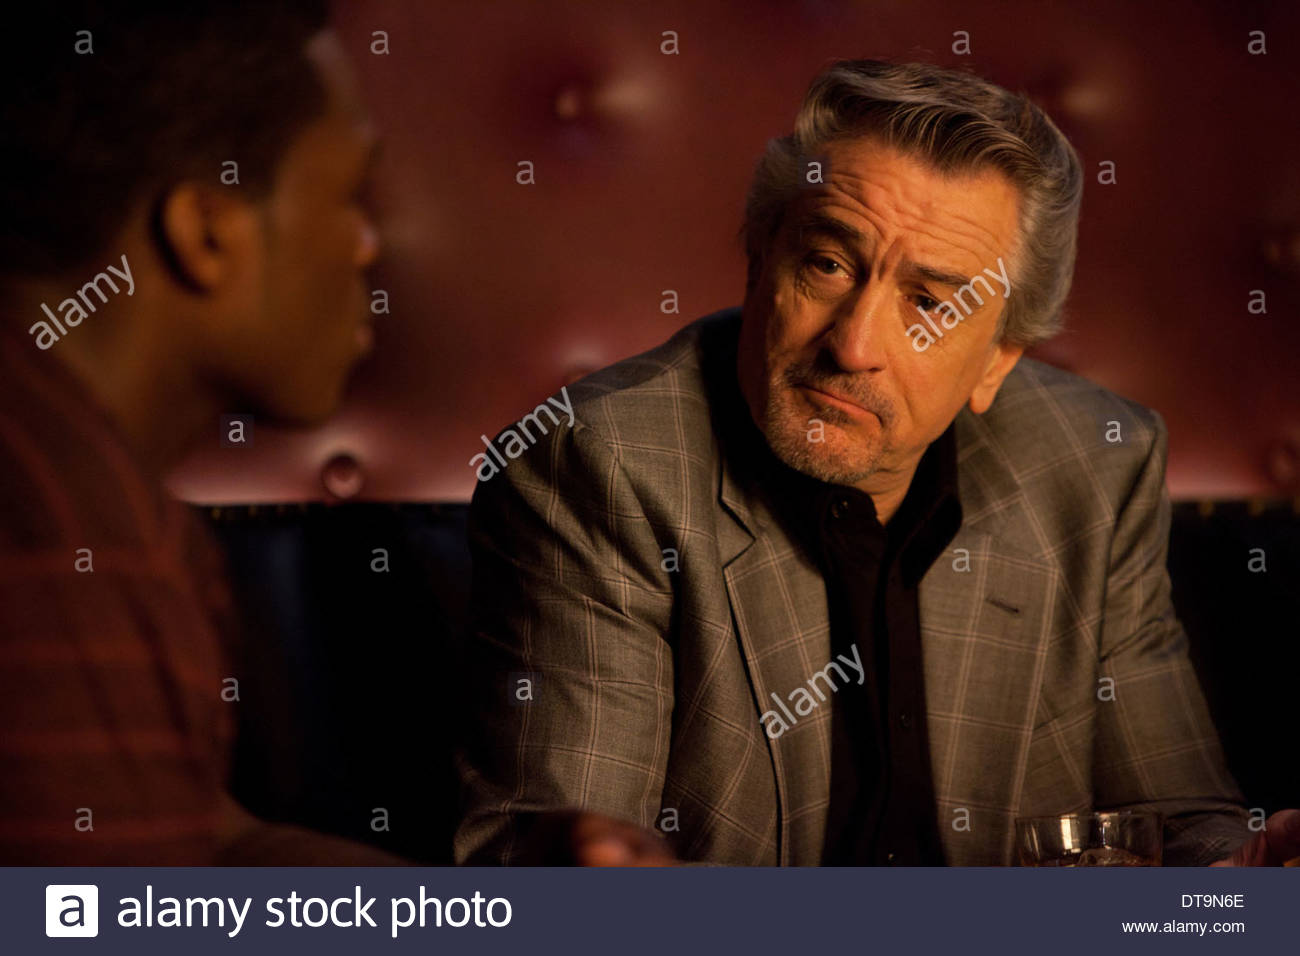 Robert De Niro As Joe Sarcone Film Title Crossfire Stock Photos